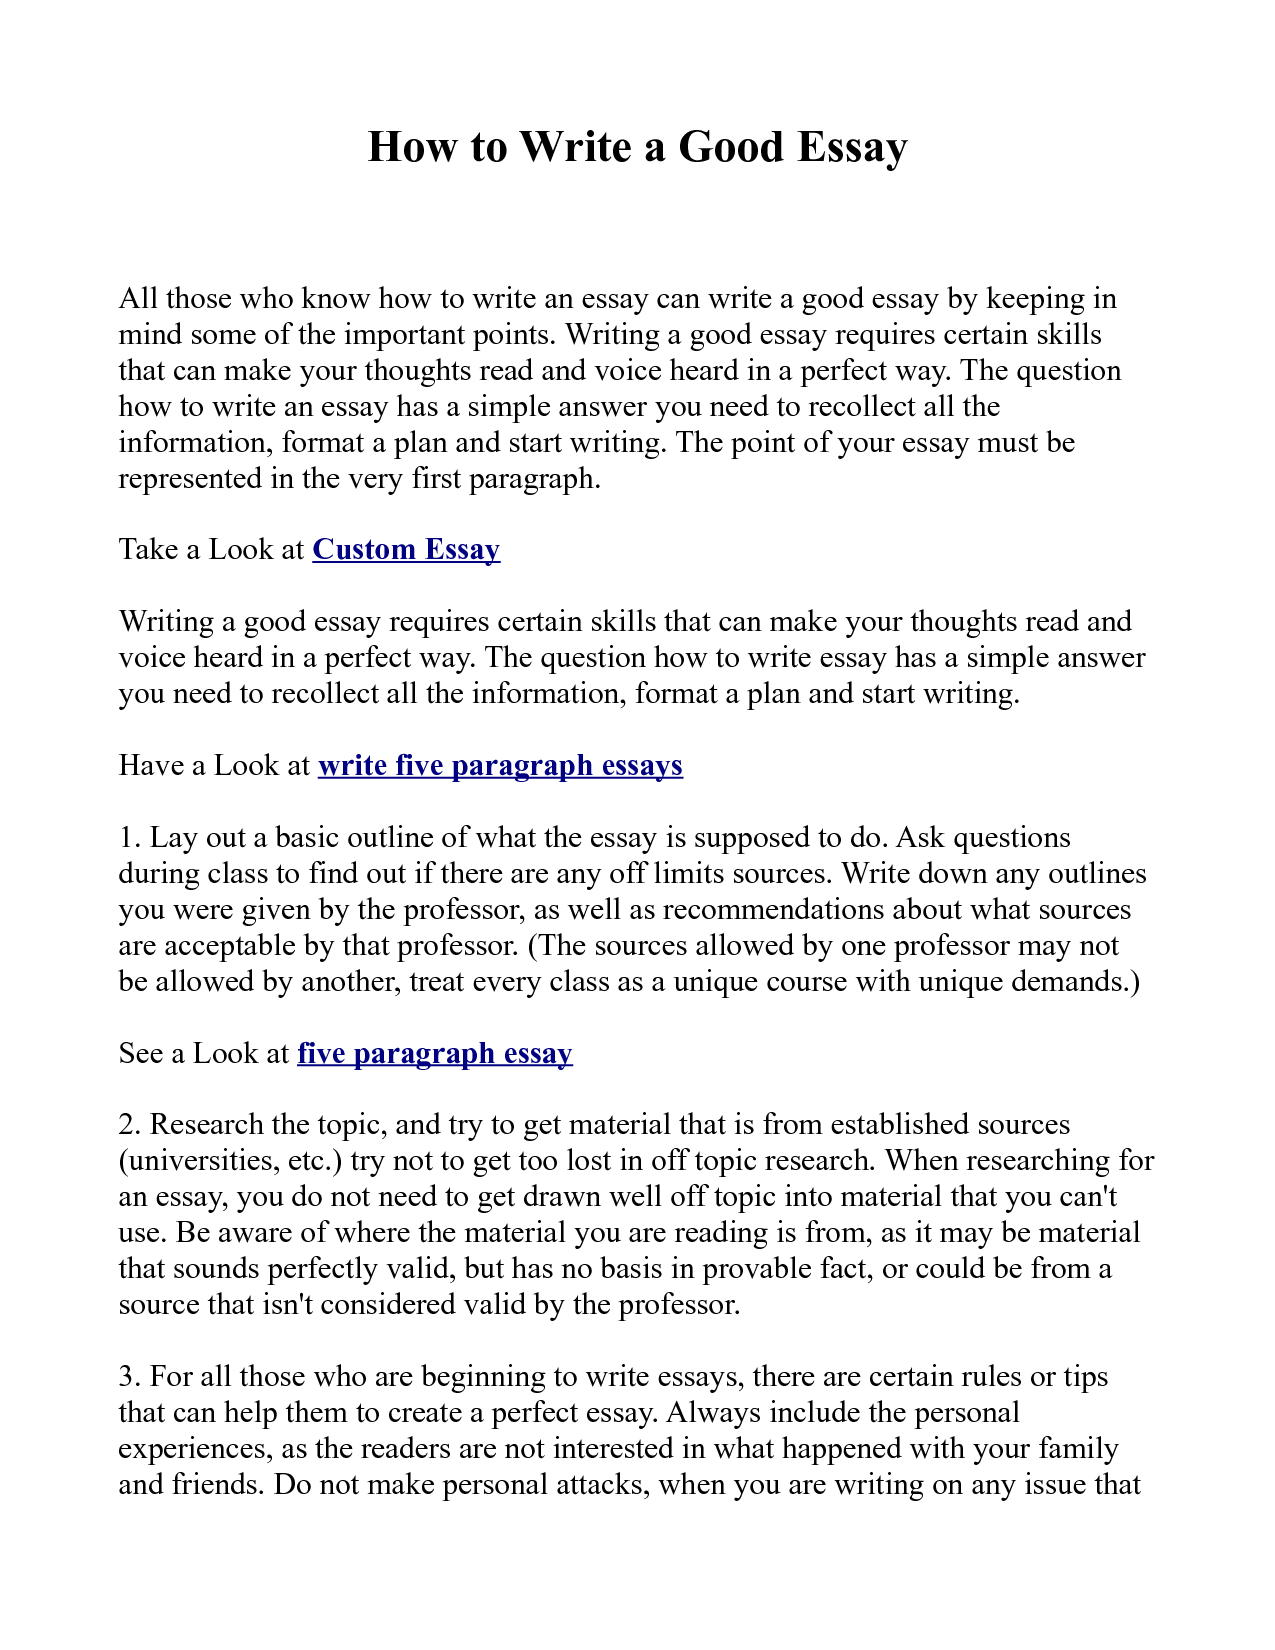 010 How To Write Essay Ex1id5s6cl Awful Ab An In 3 Hours Introduction Body And Conclusion 2 Full